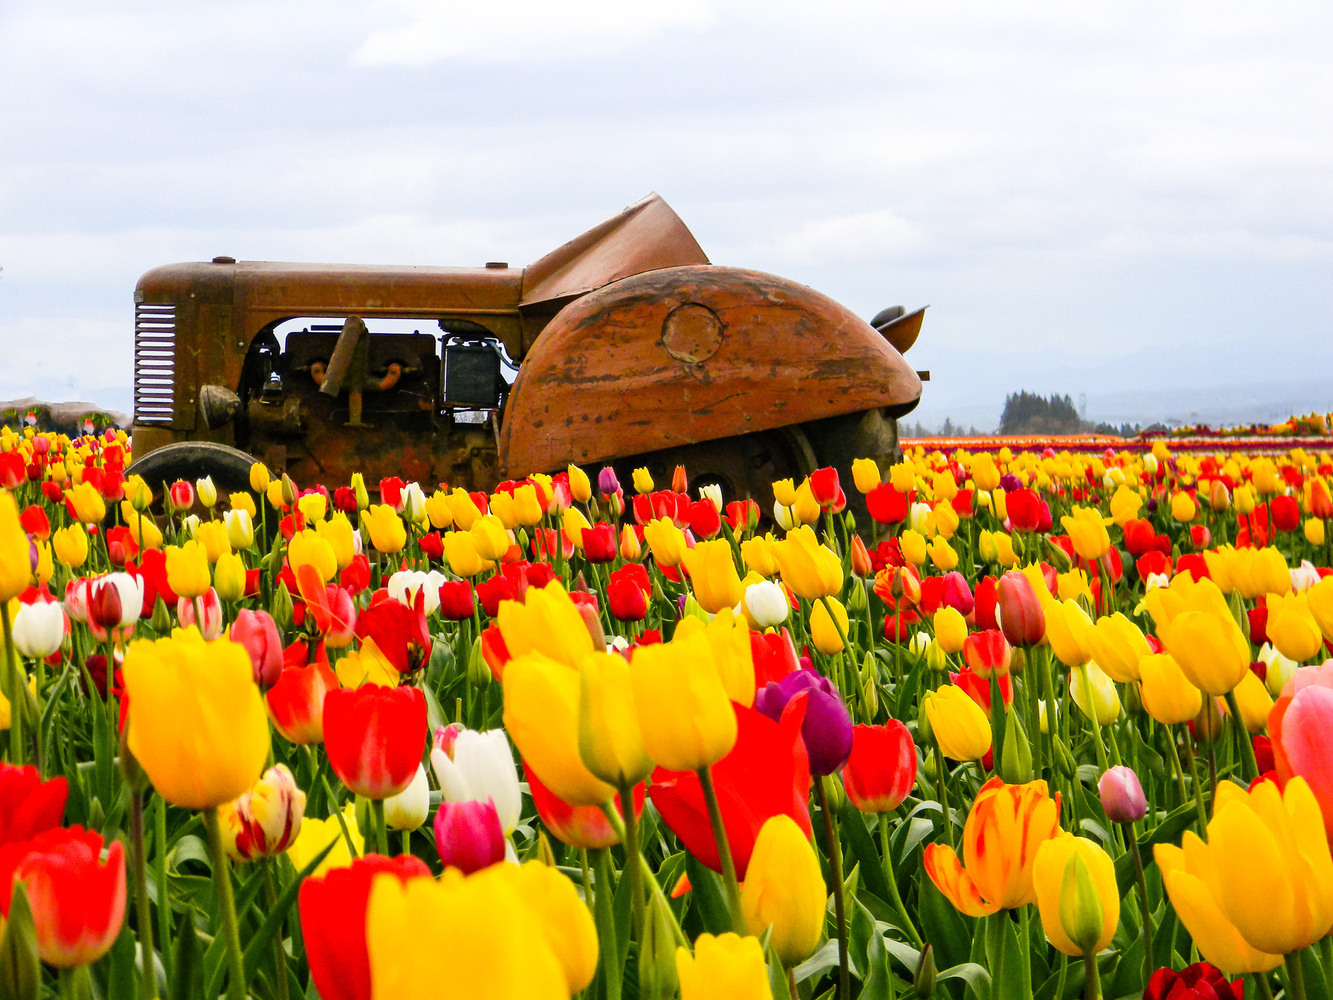 Tractor and tulips by Chris Snyder